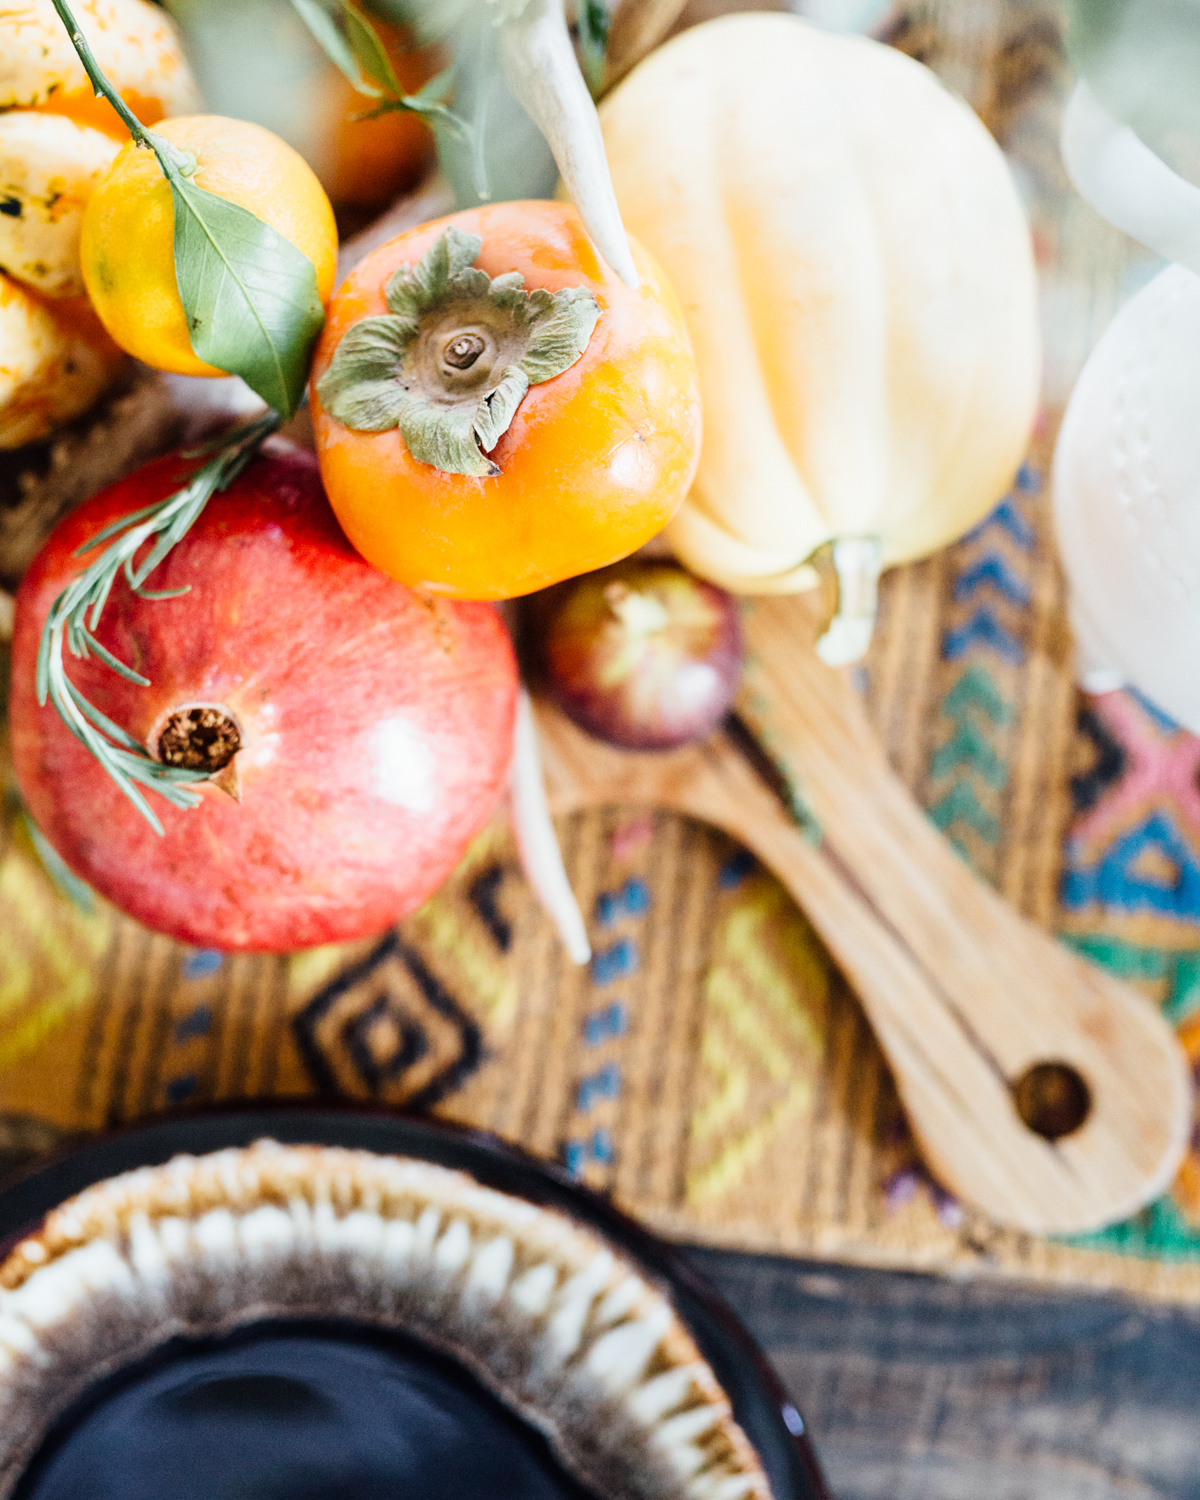 Seasonal farmers market goodness like squash, persimmon, and pomegranate create a charming and inexpensive harvested centerpiece.